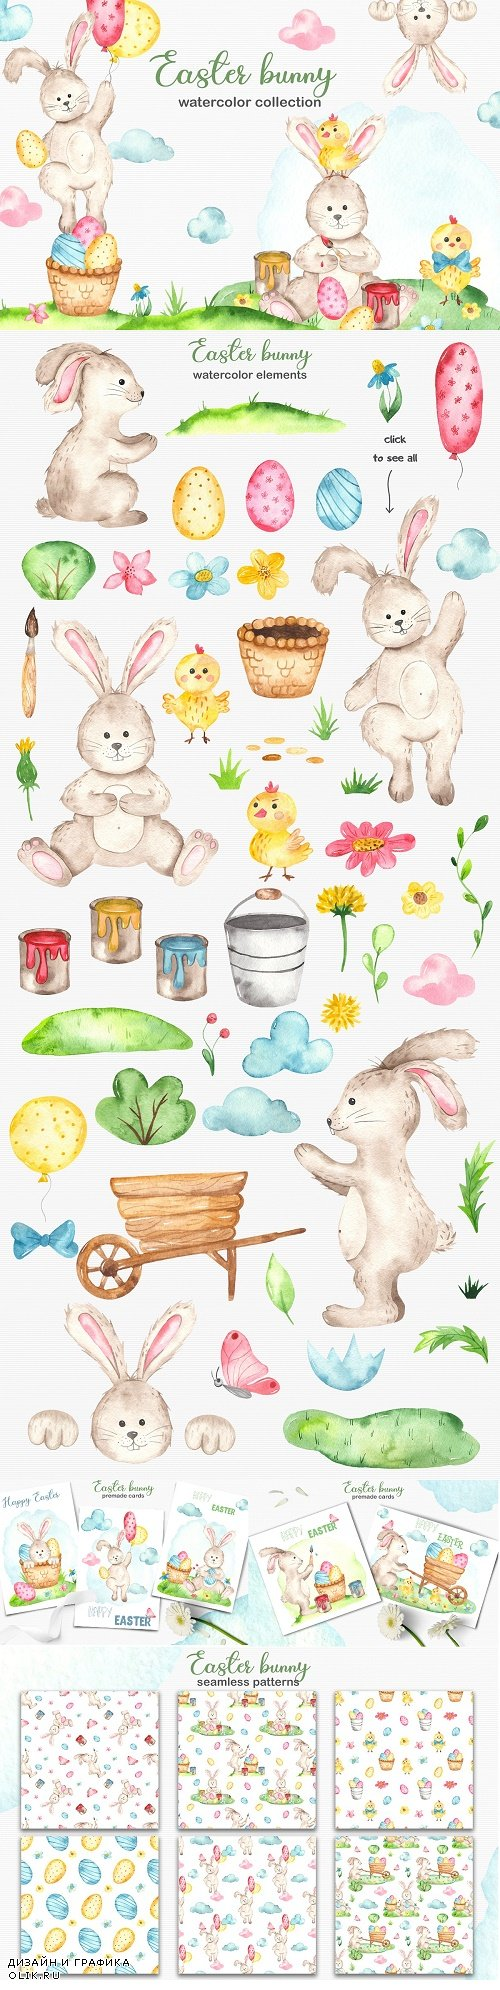 Easter Bunny watercolor collection - 4503009